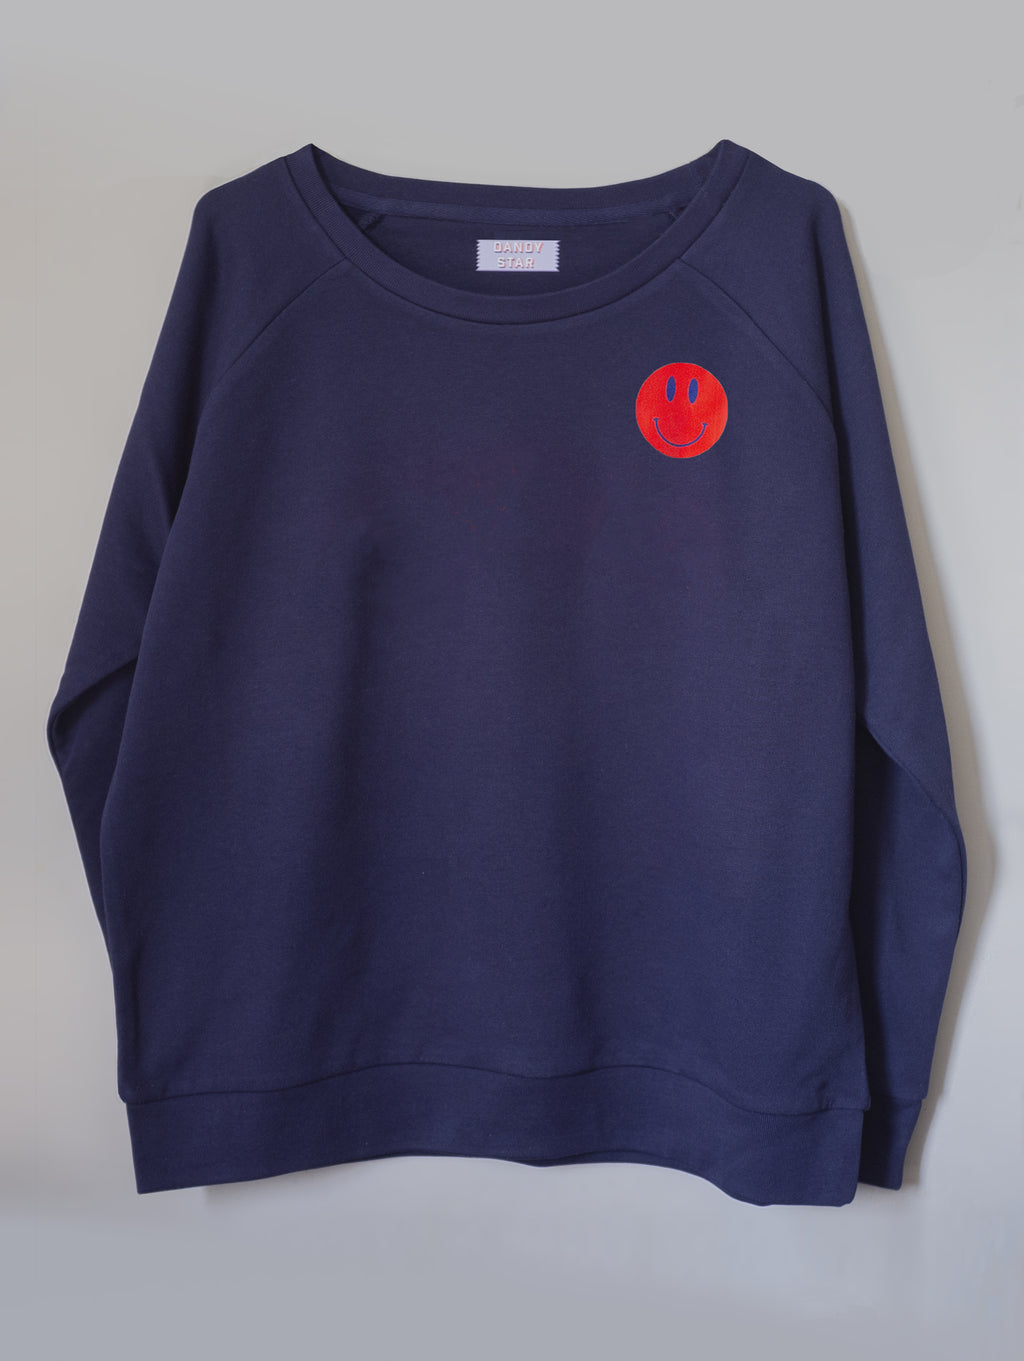 SMILEY CLASSIC NAVY SWEATSHIRT